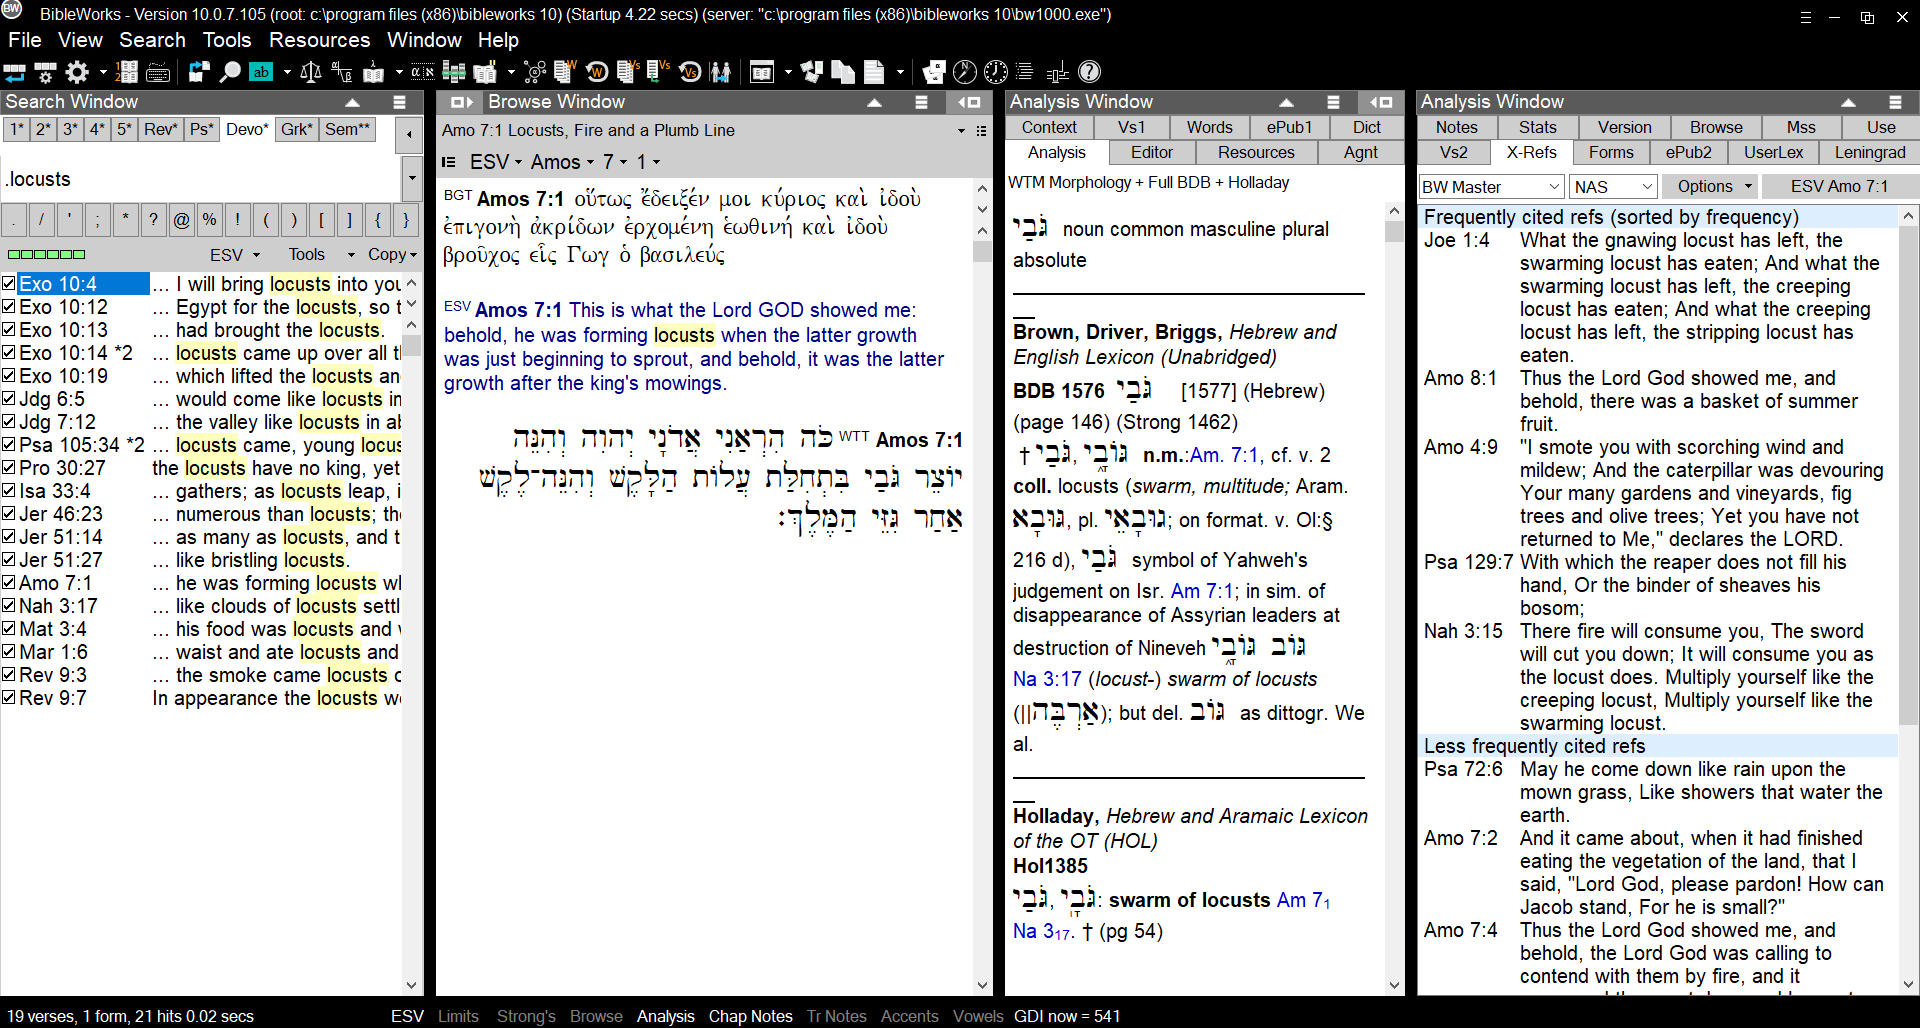 BibleWorks 10 four column layout